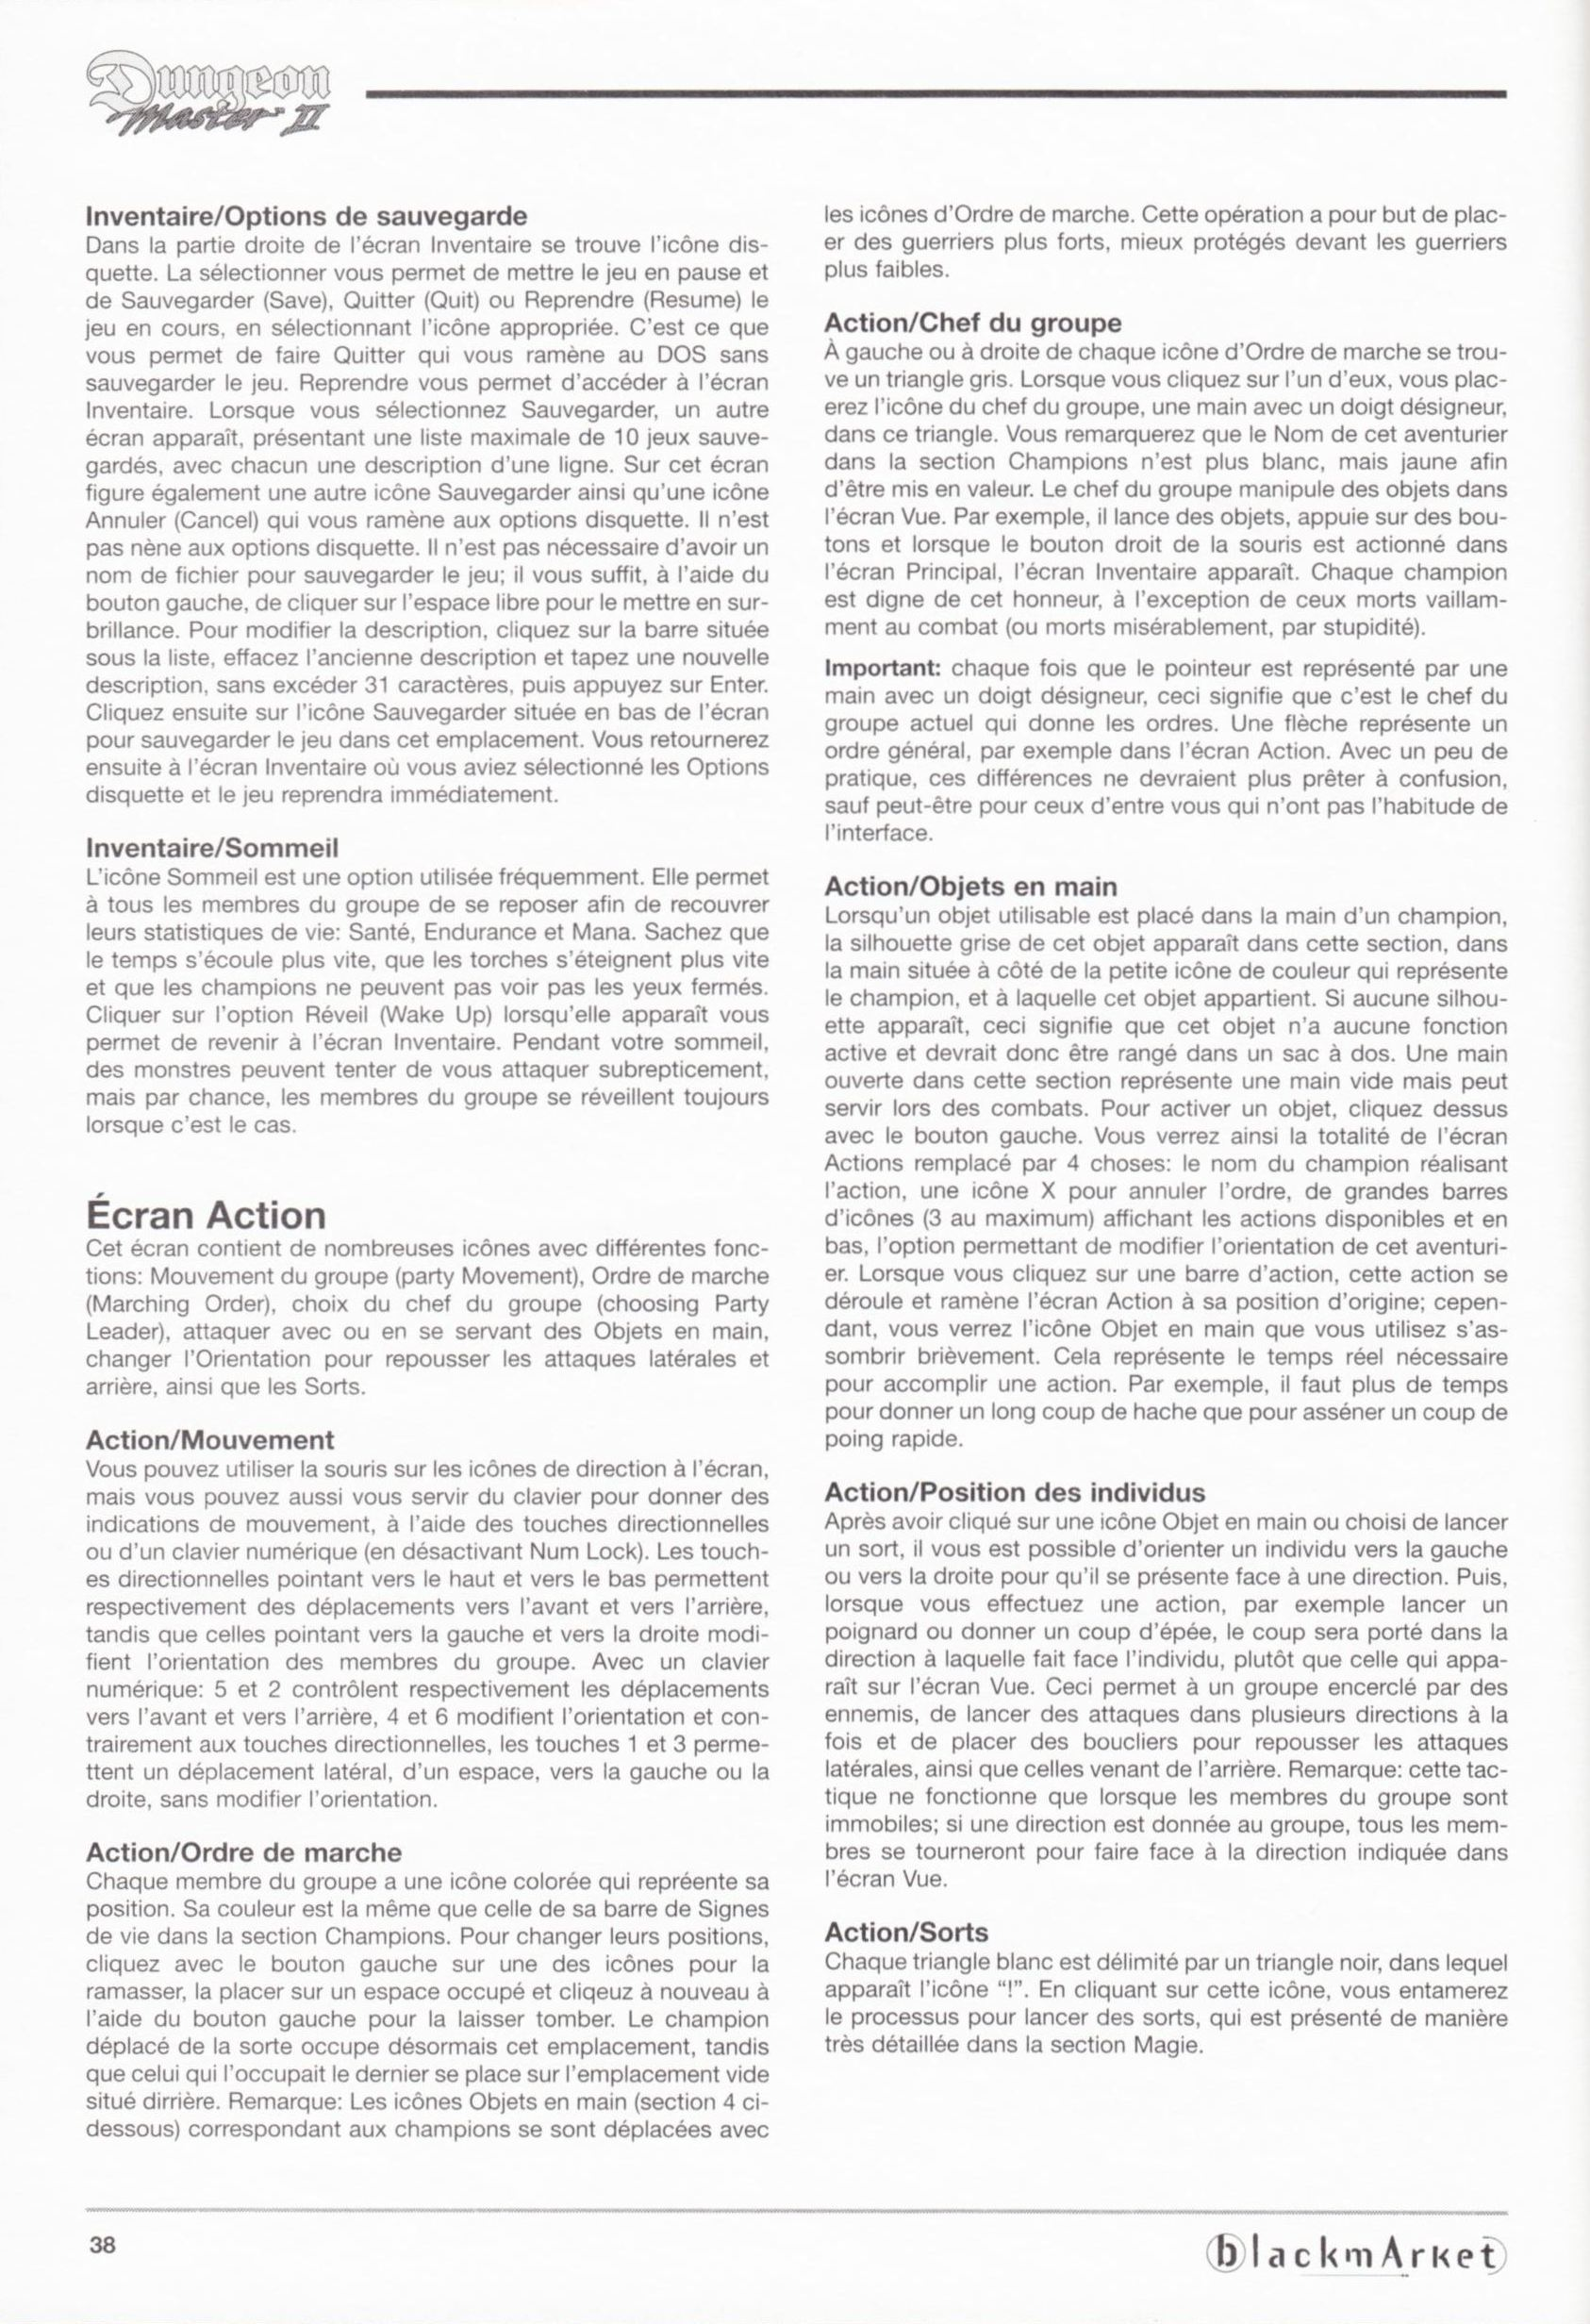 Game - Dungeon Master II - DE - PC - Blackmarket With Manual - Manual - Page 040 - Scan